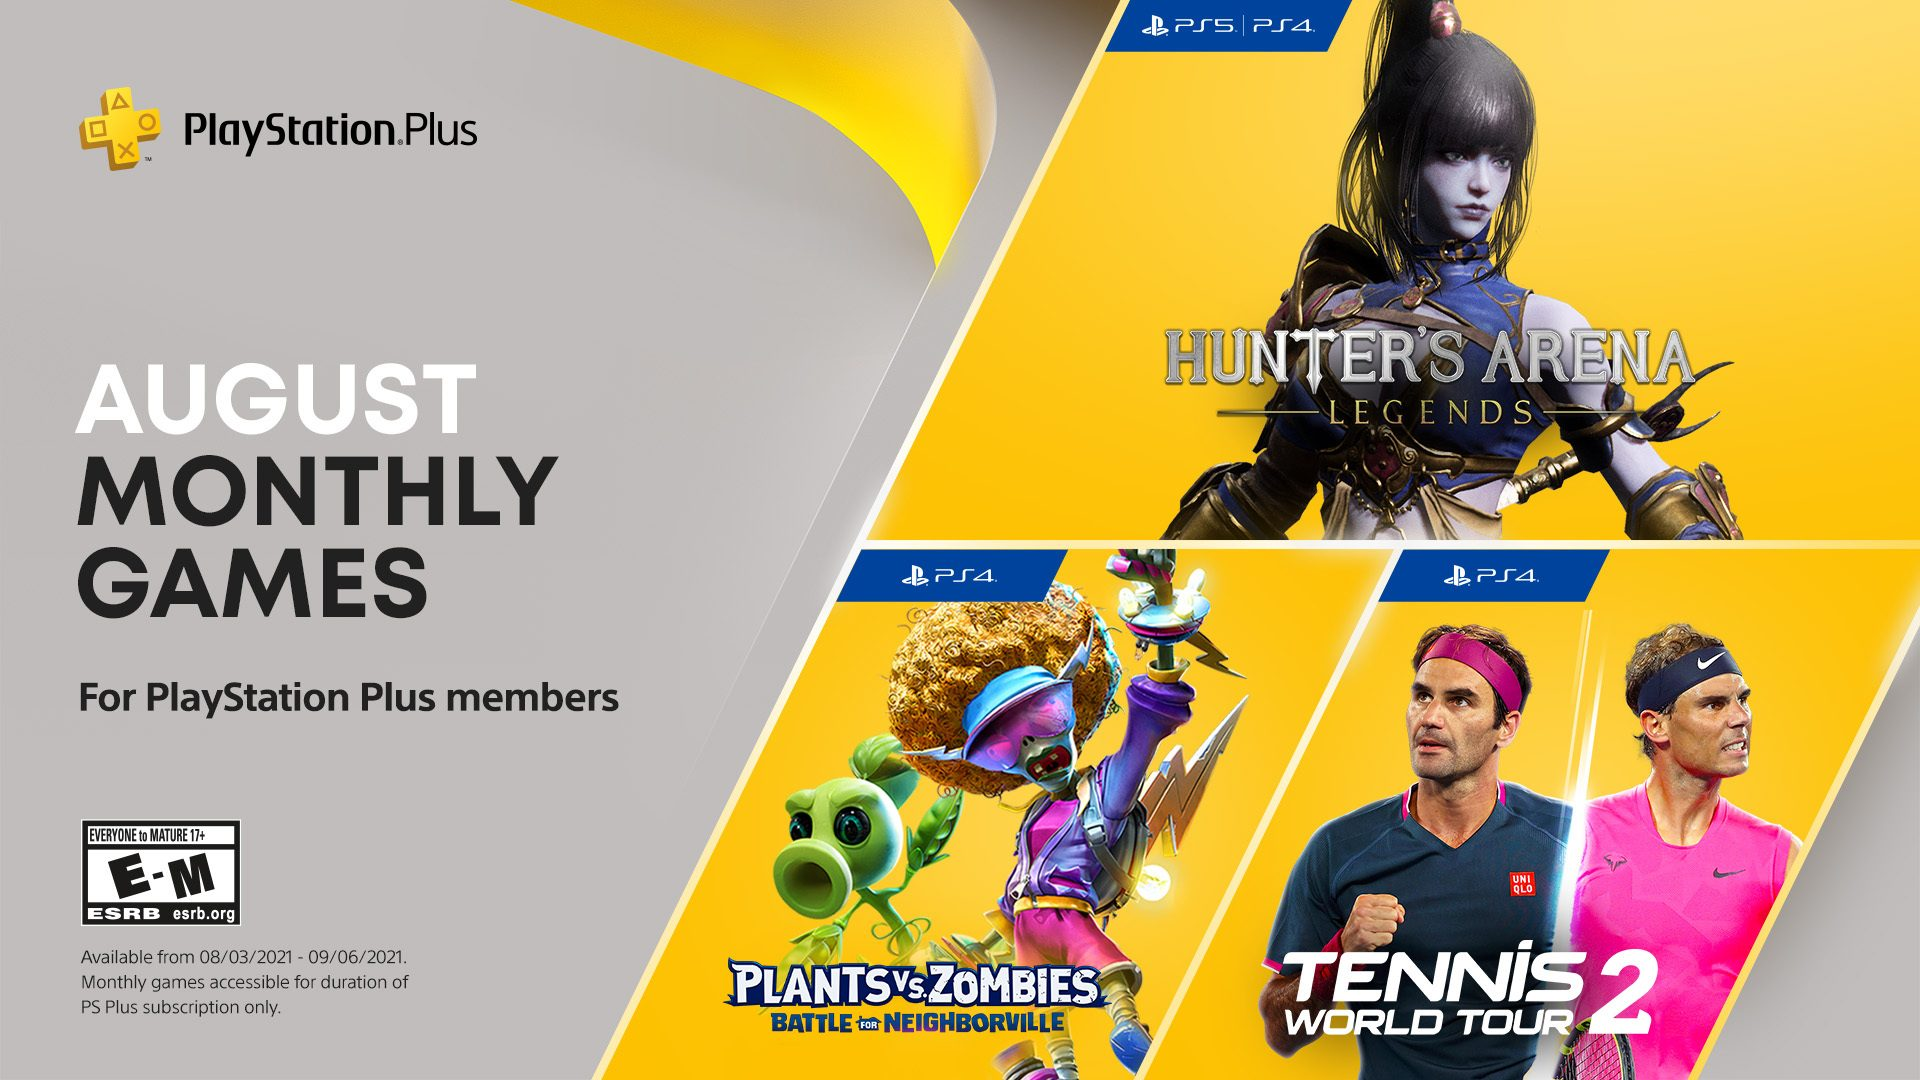 playstation-as-well-as-game-titles-for-august:-hunter's-arena:-legends,-plants-vs.-zombies:-battle-for-neighborville,-tennis-globe-tour-two